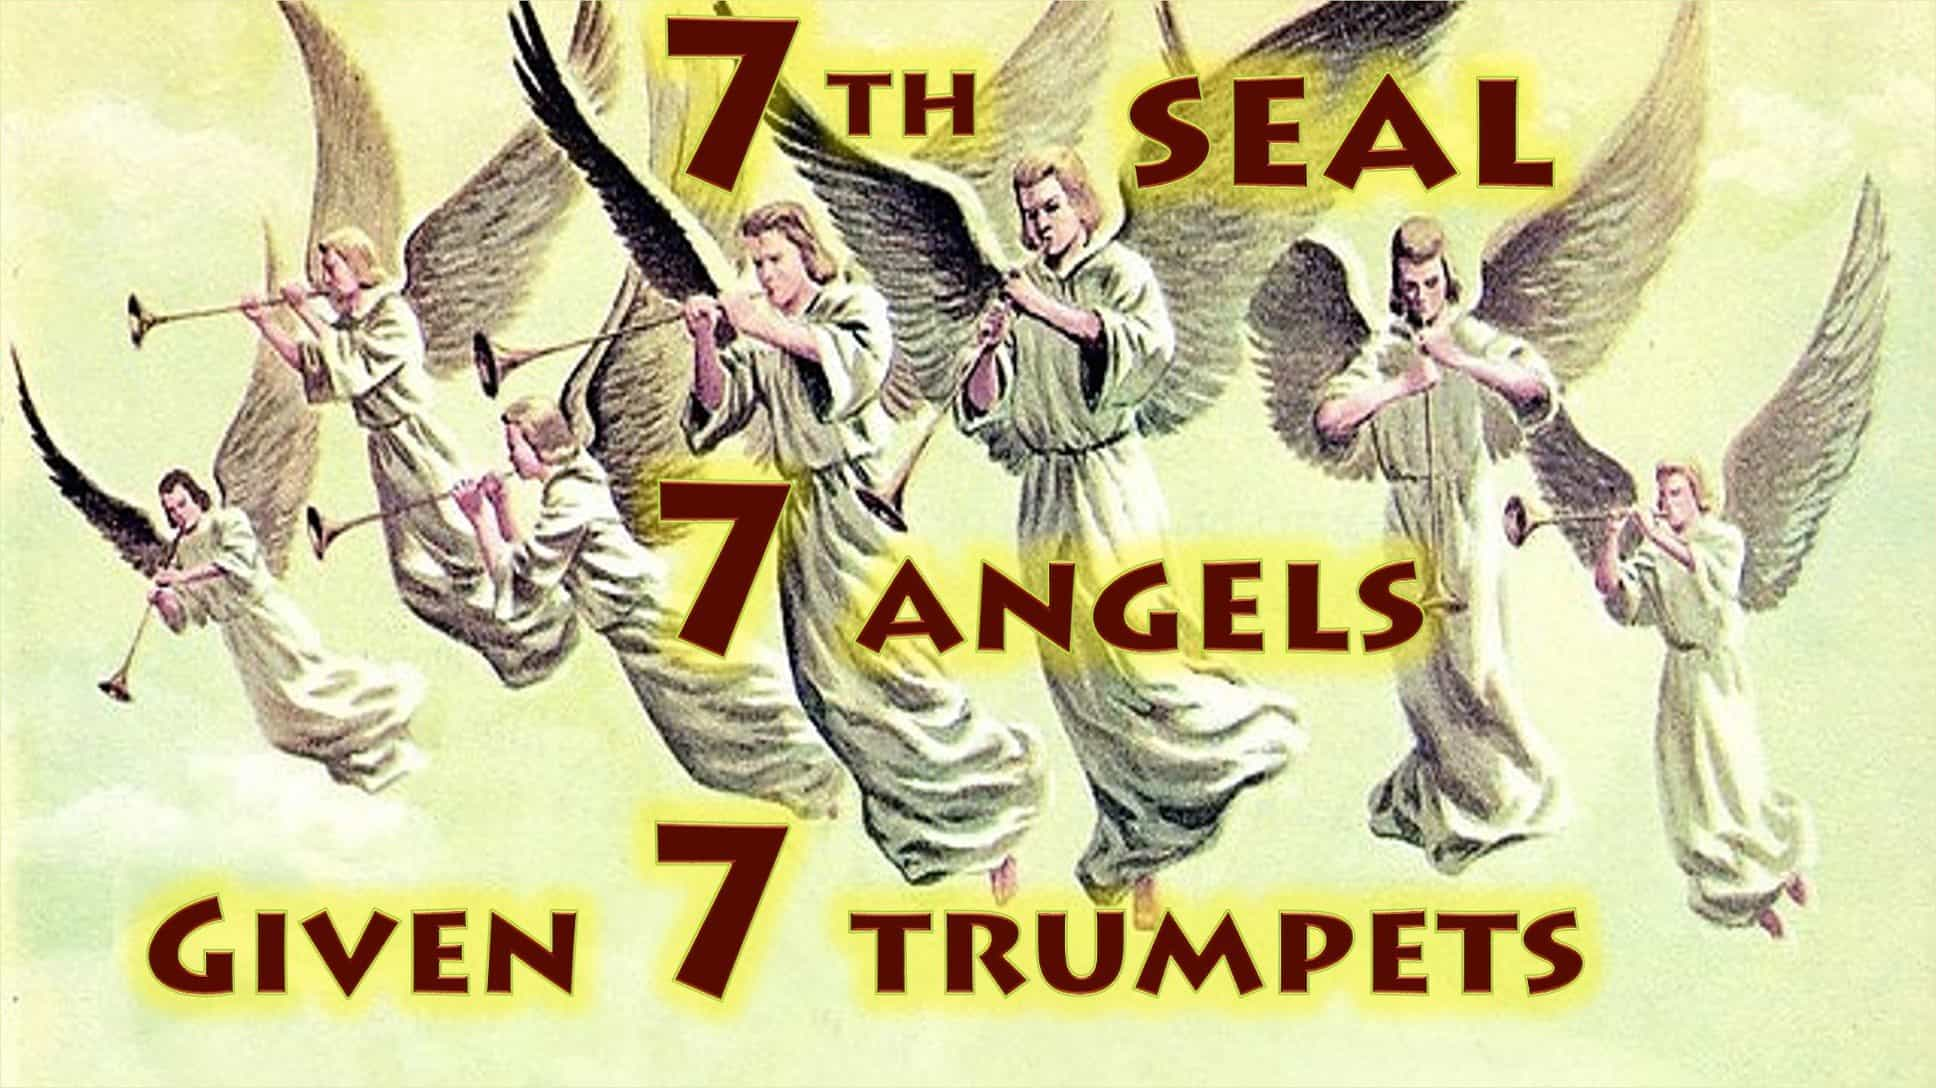 Seventh Seal,Seven Angels,Seven Trumpets,Seventh Seal,7th Seal,Book of Revelation,Revelation Chapter 8,Apocalypse